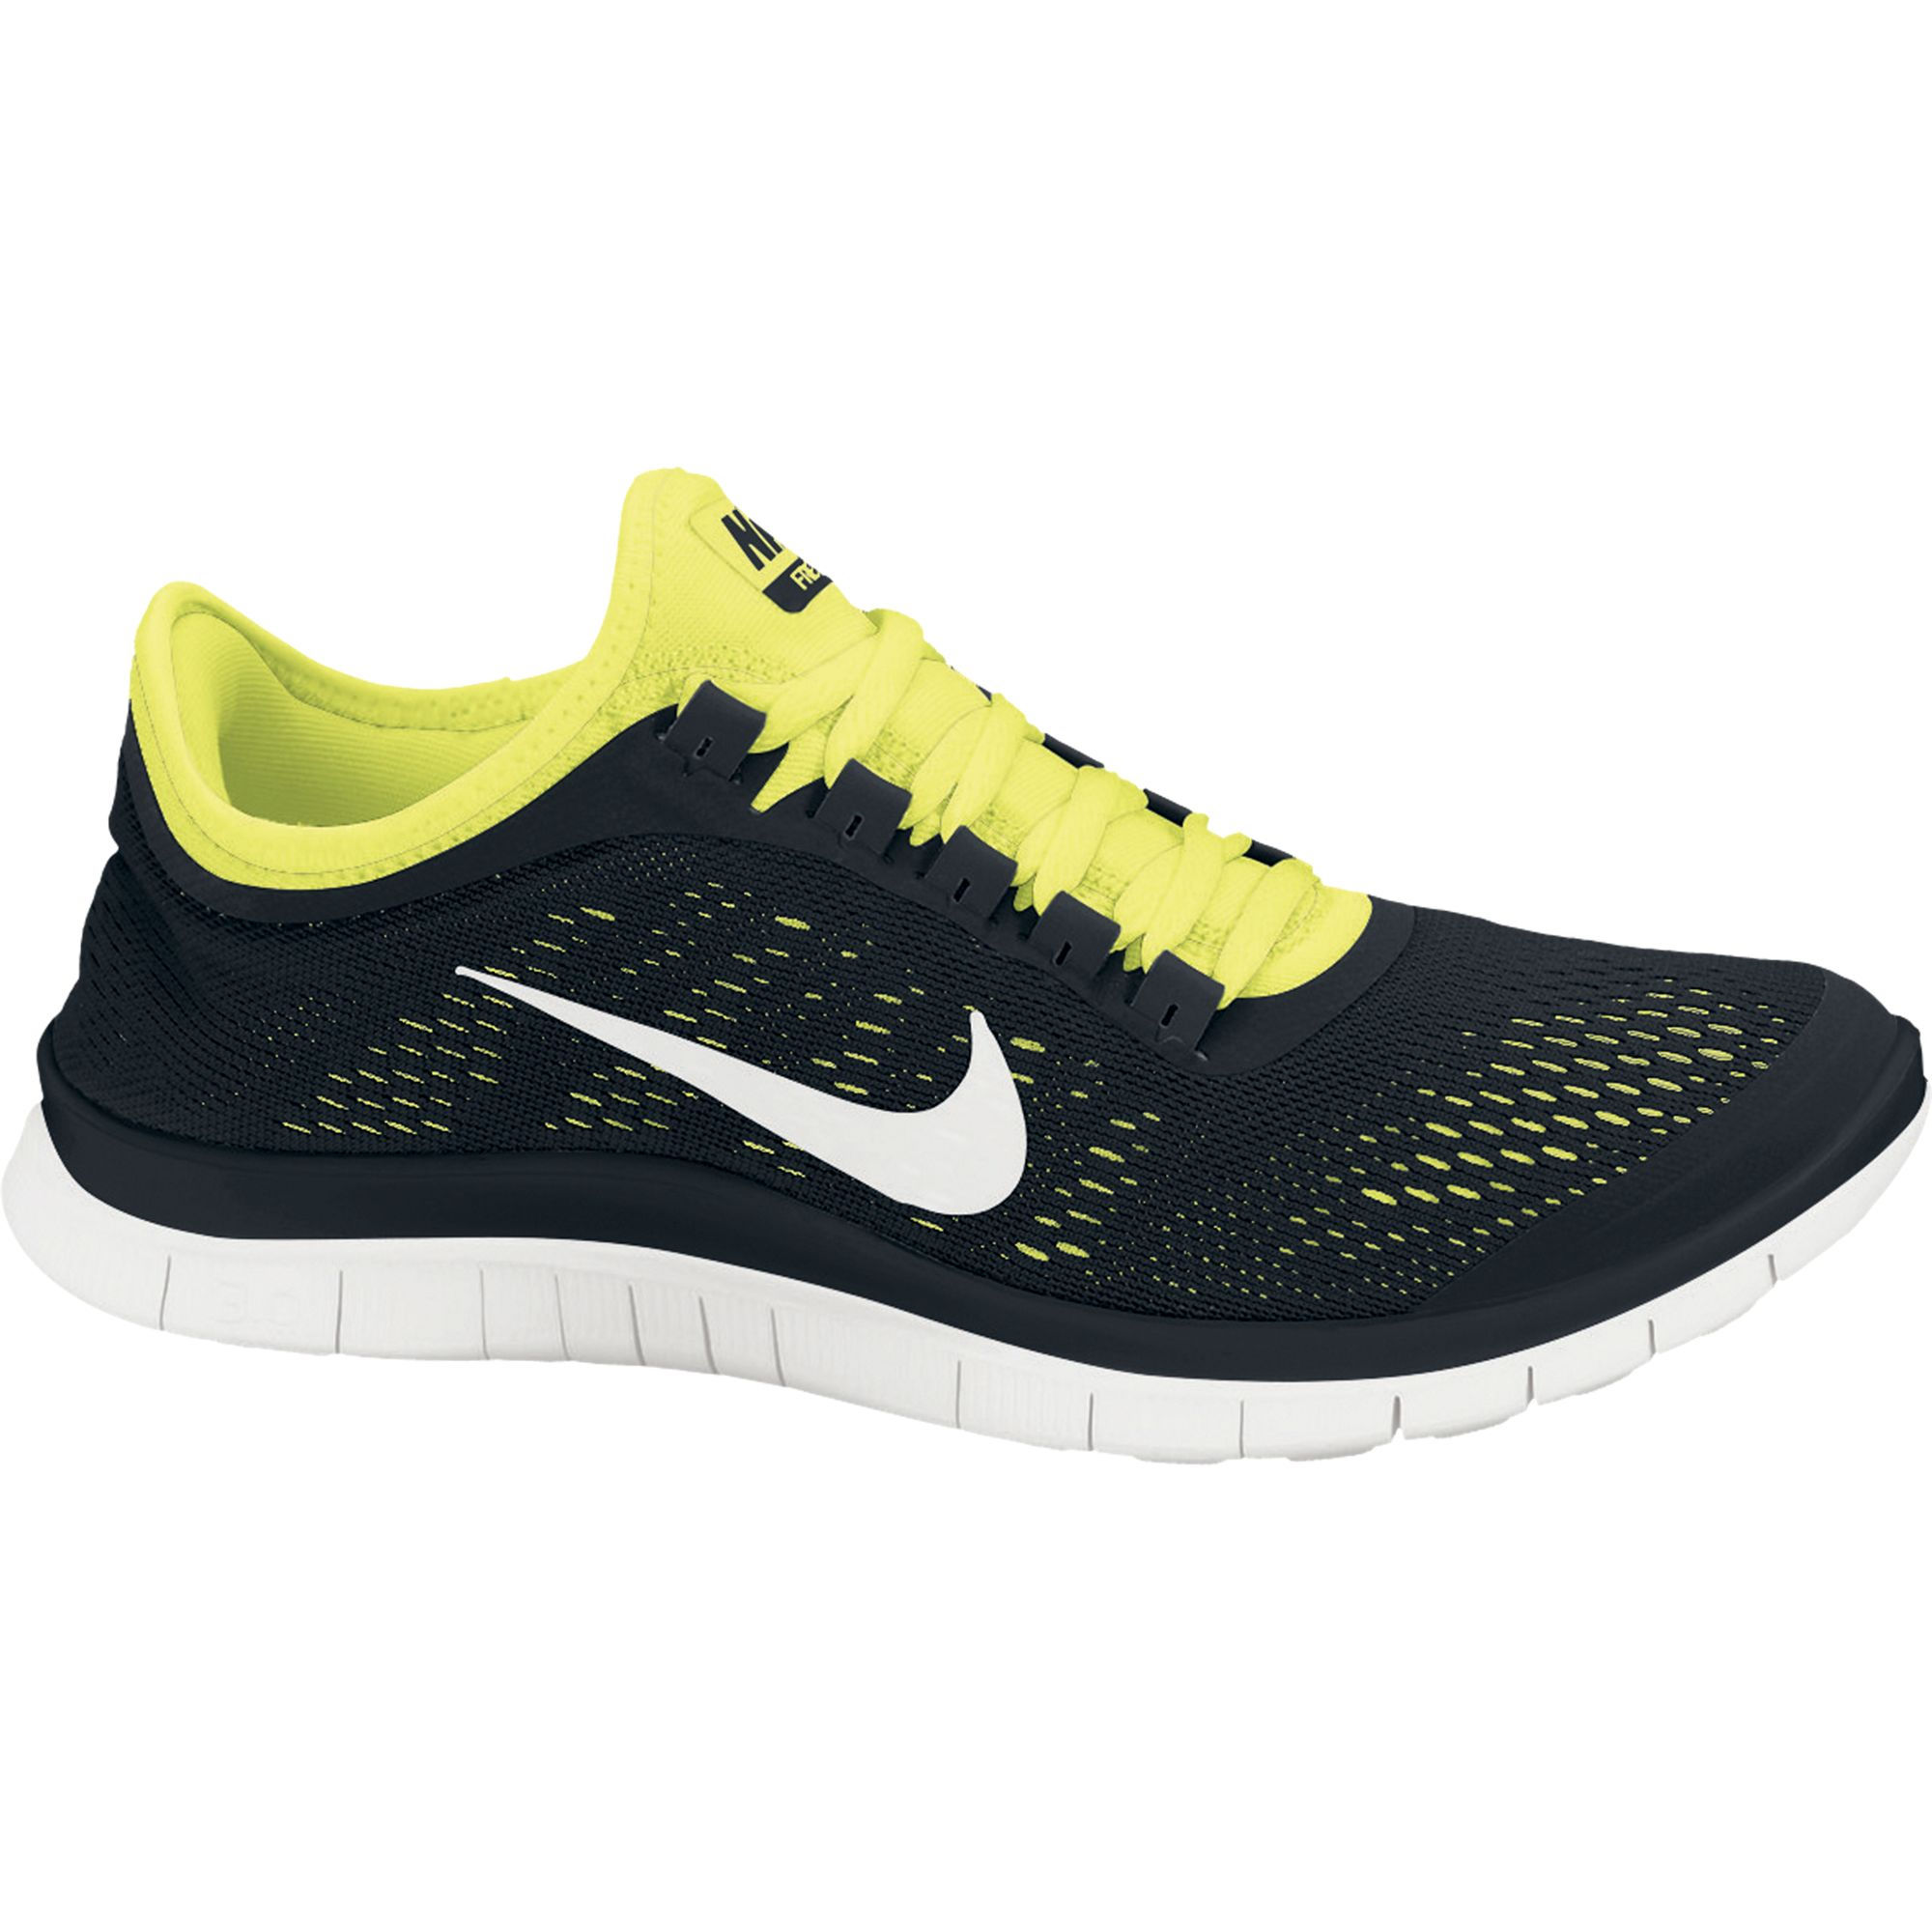 Buy Nike Free 3.0 V4 Men Black Sports Shoes Sports Shoes for Men